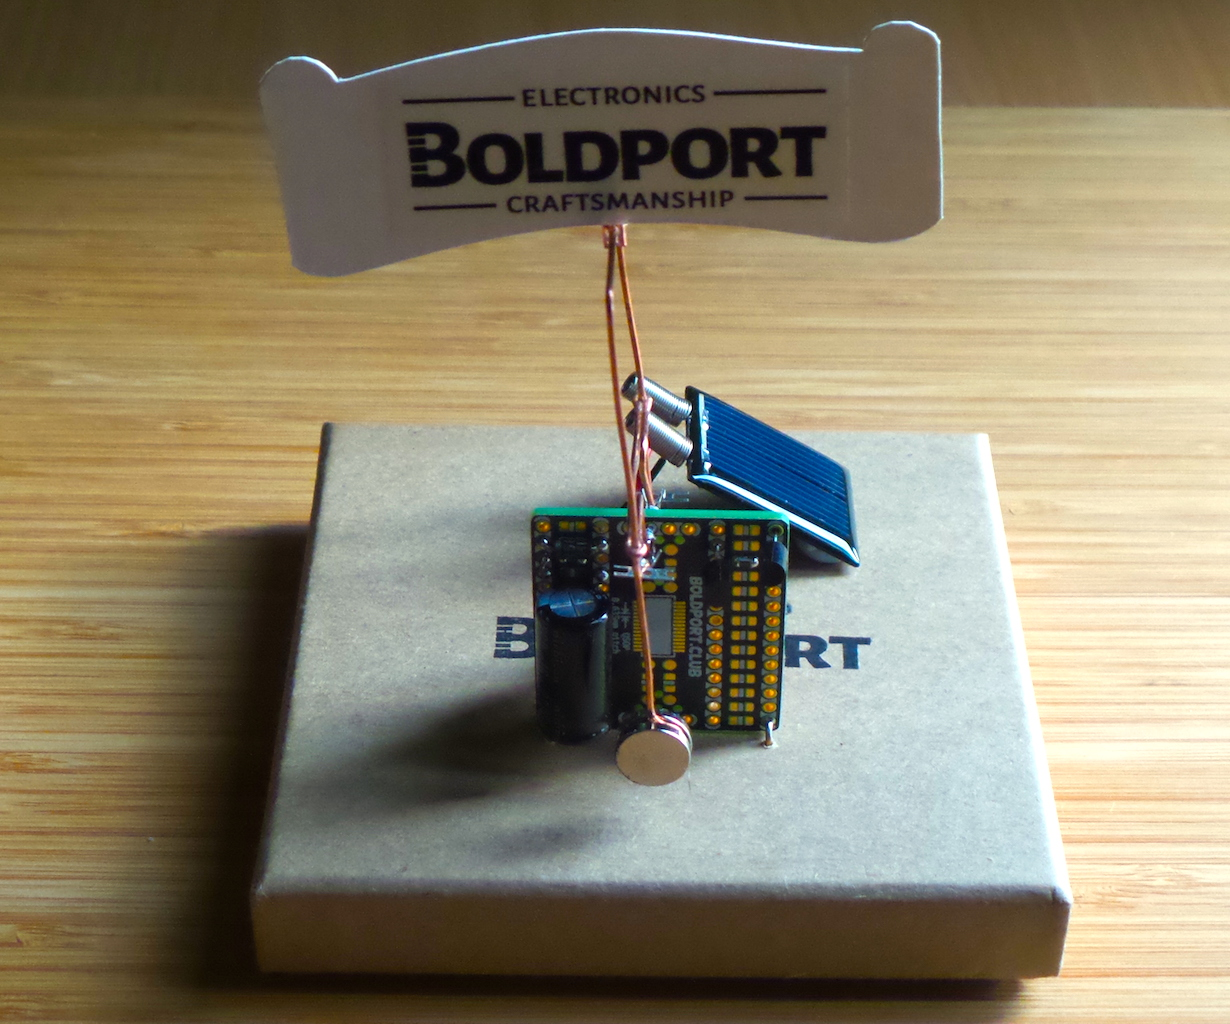 LEAP#296: flying the #BoldportClub flag on a solar pendulum